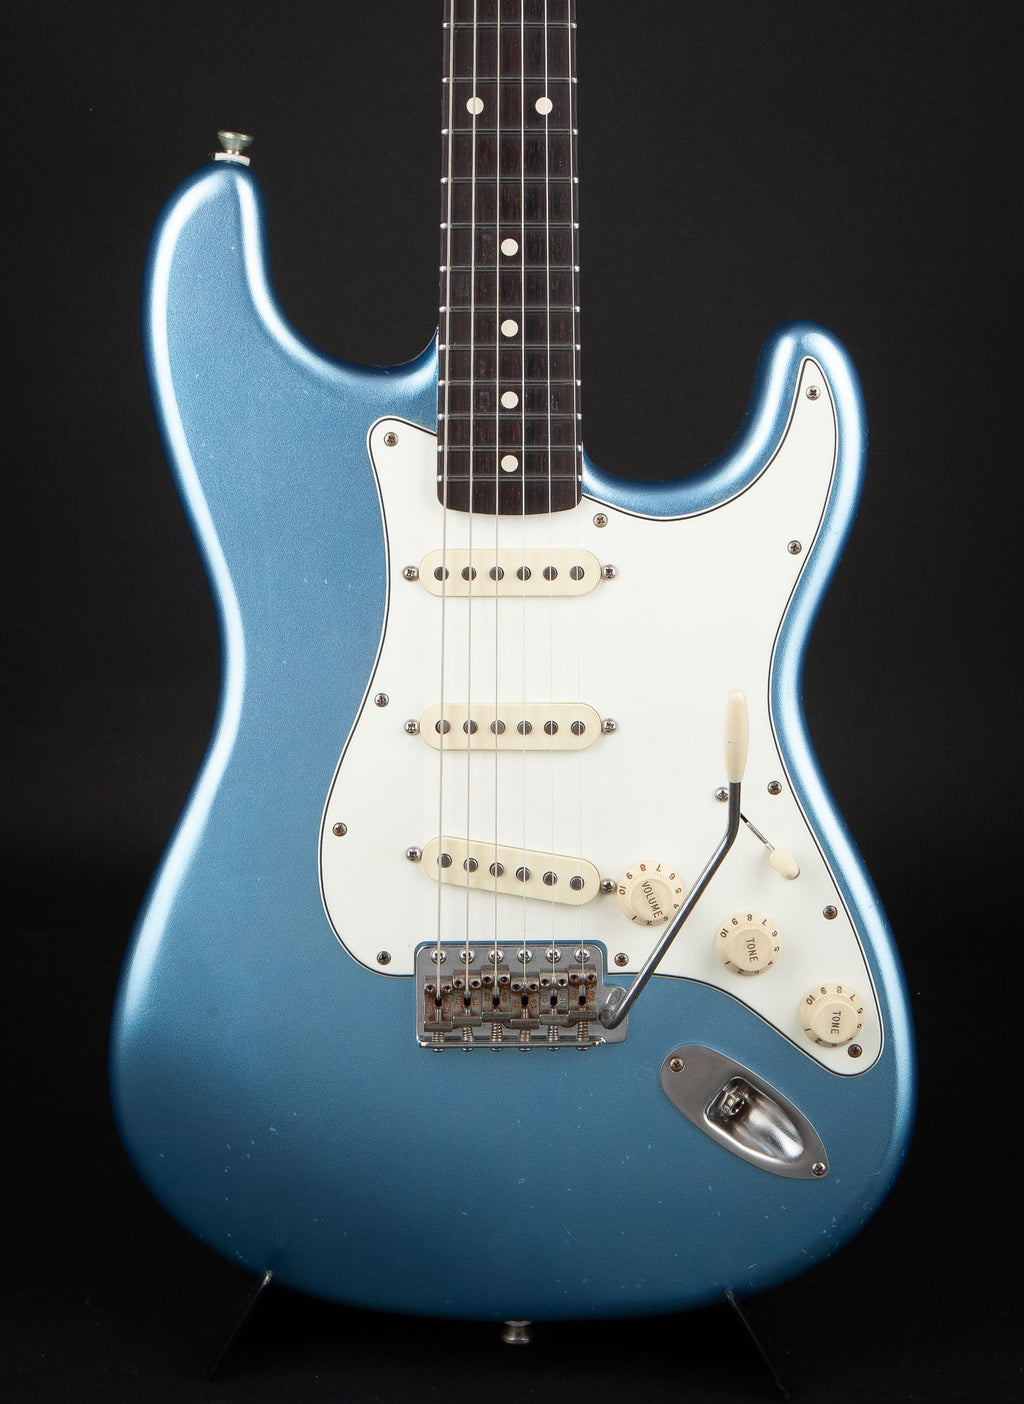 Smitty Guitars: 60's Classic S Lake Placid Blue with Mastergrade Roasted Flame Maple Neck